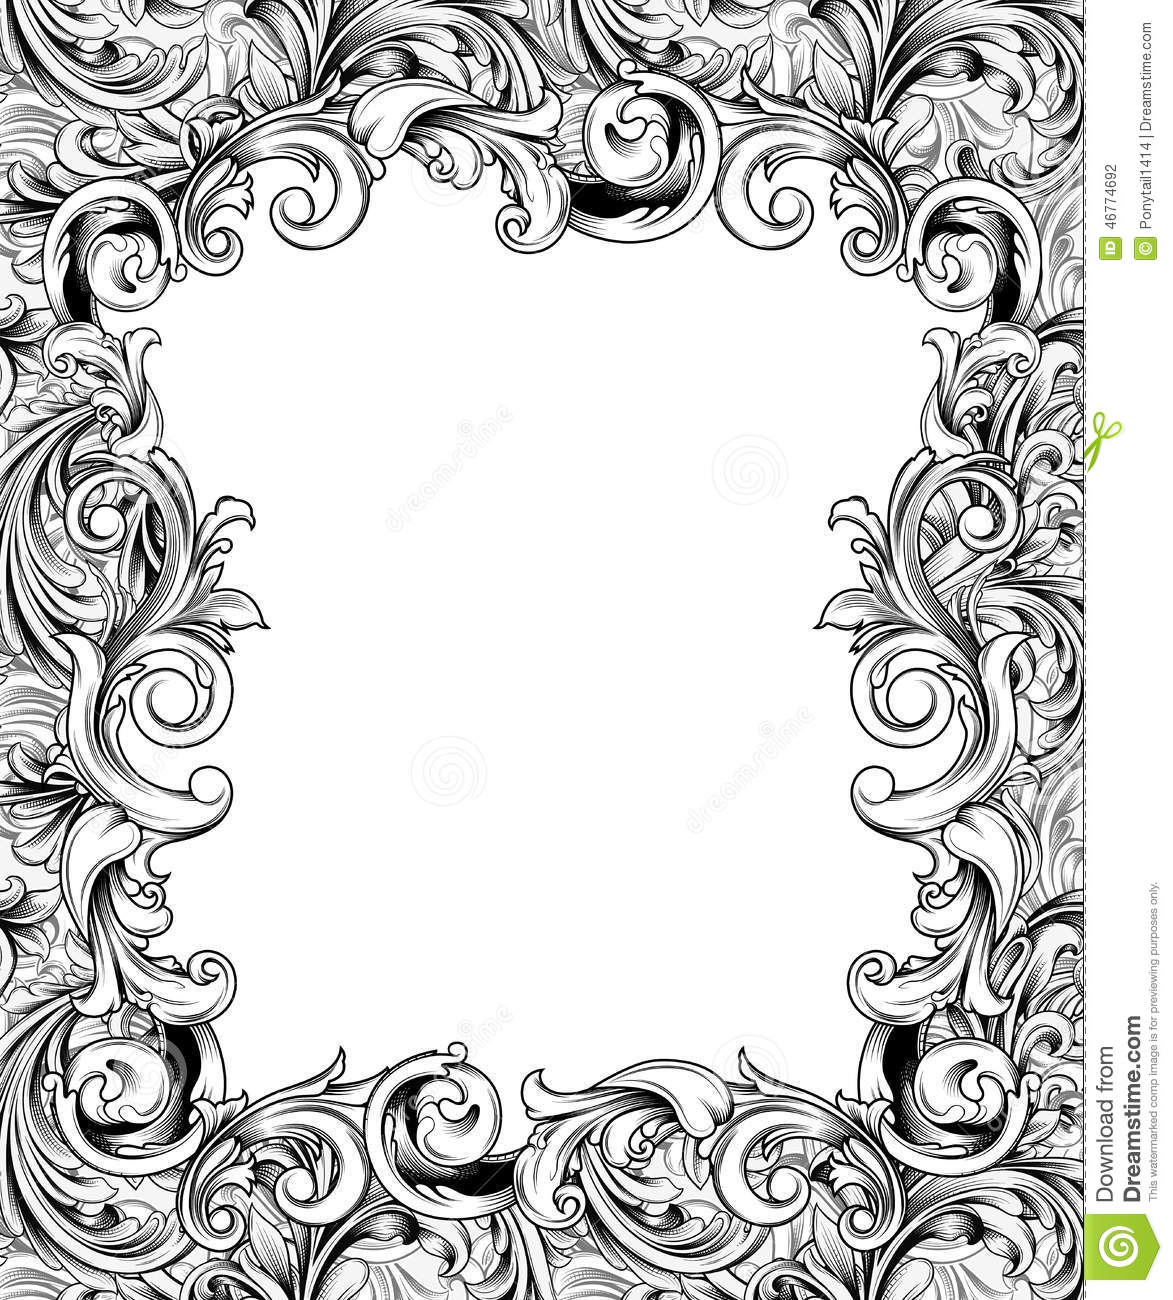 ornate engraved baroque frame